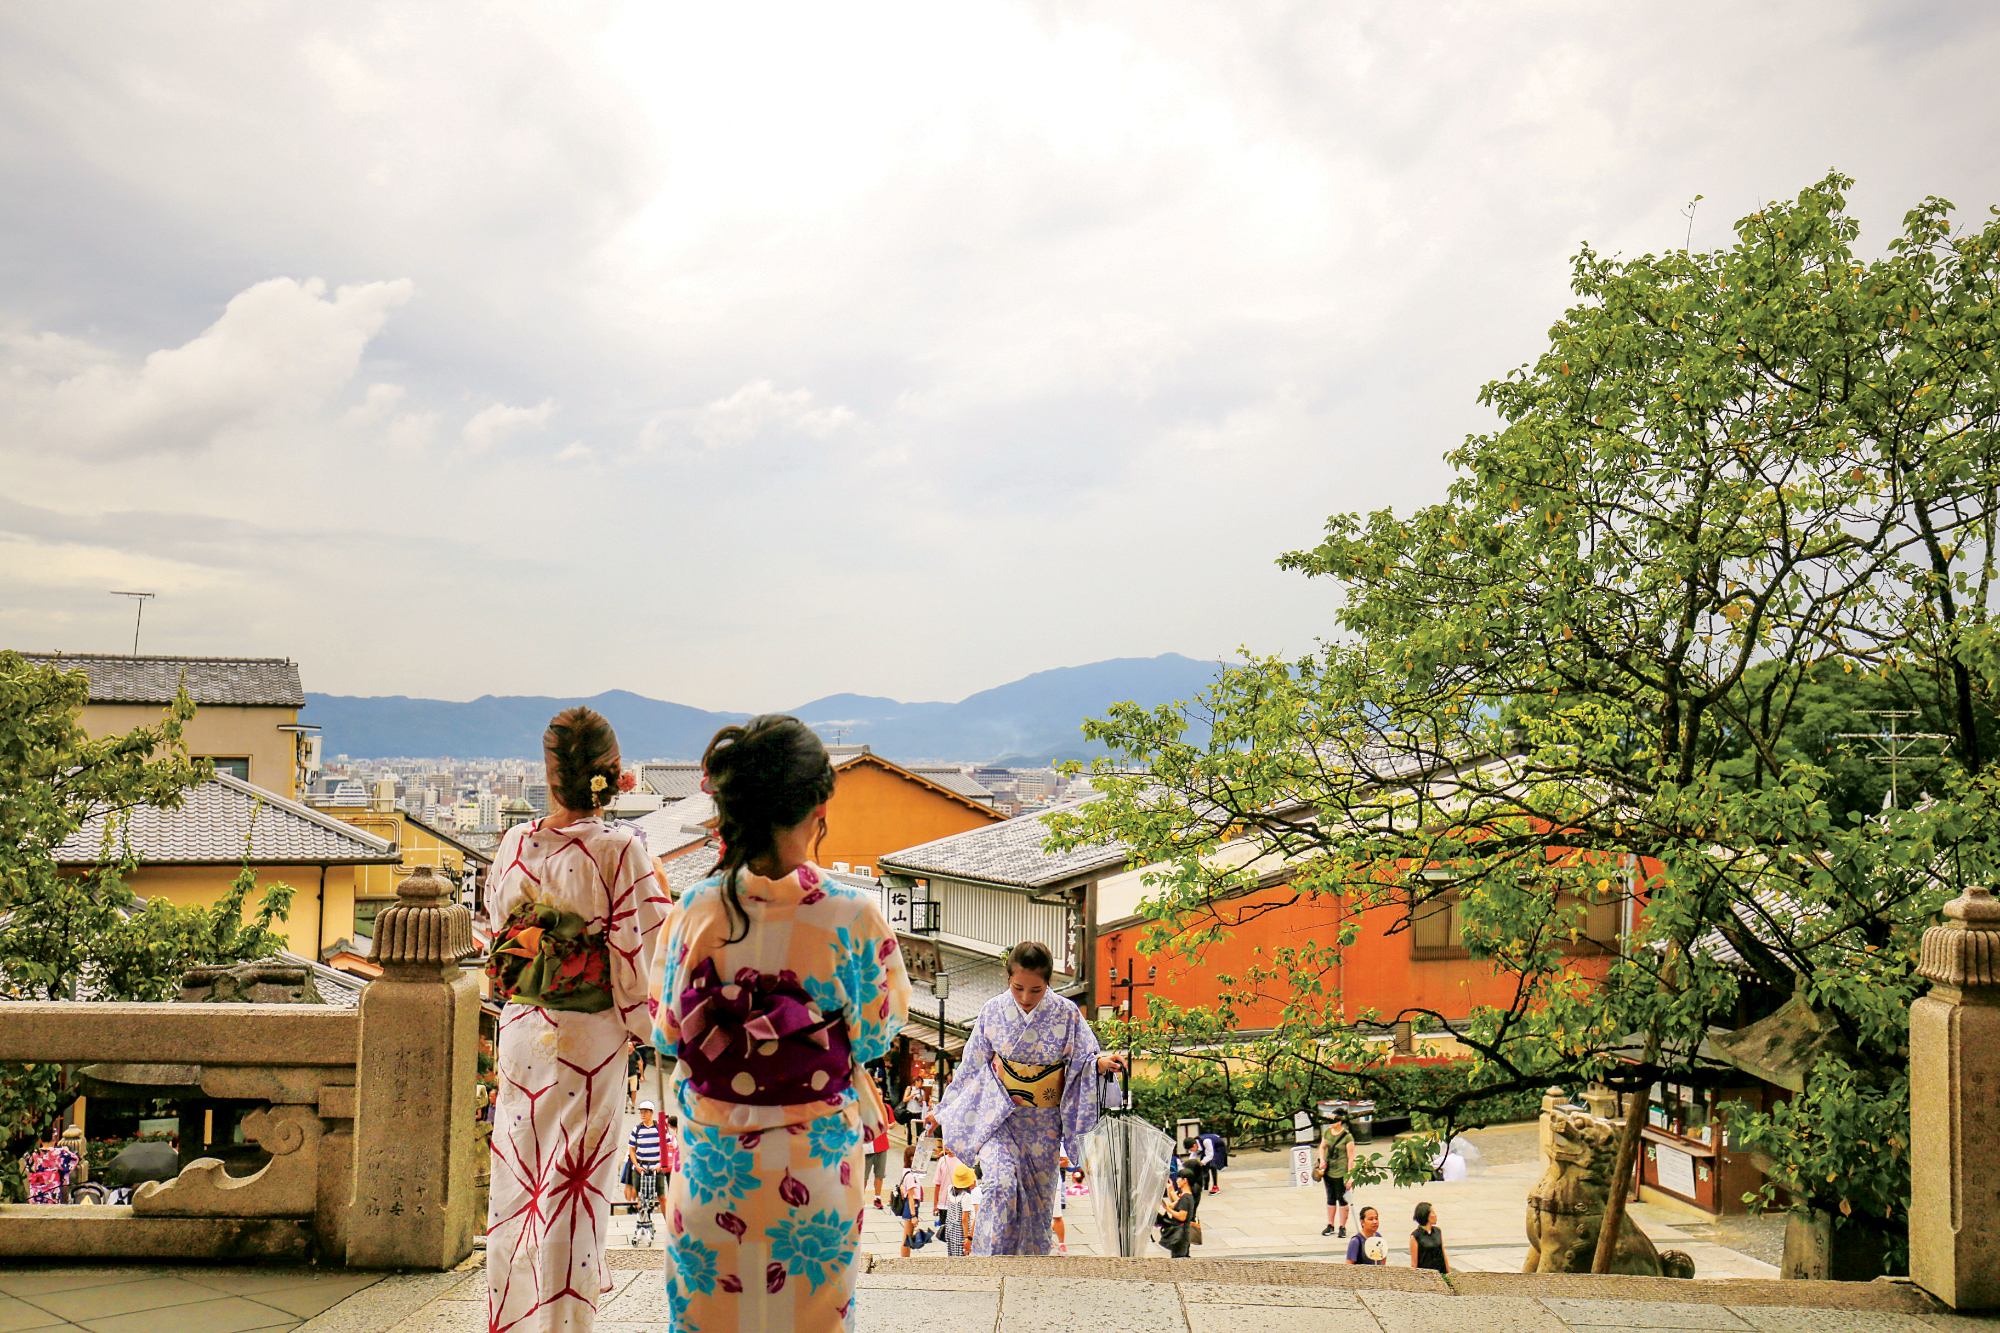 Colorful photograph of women dressed up in kimonos overlooking Kyoto downtown, Mountains can be seen in the distance